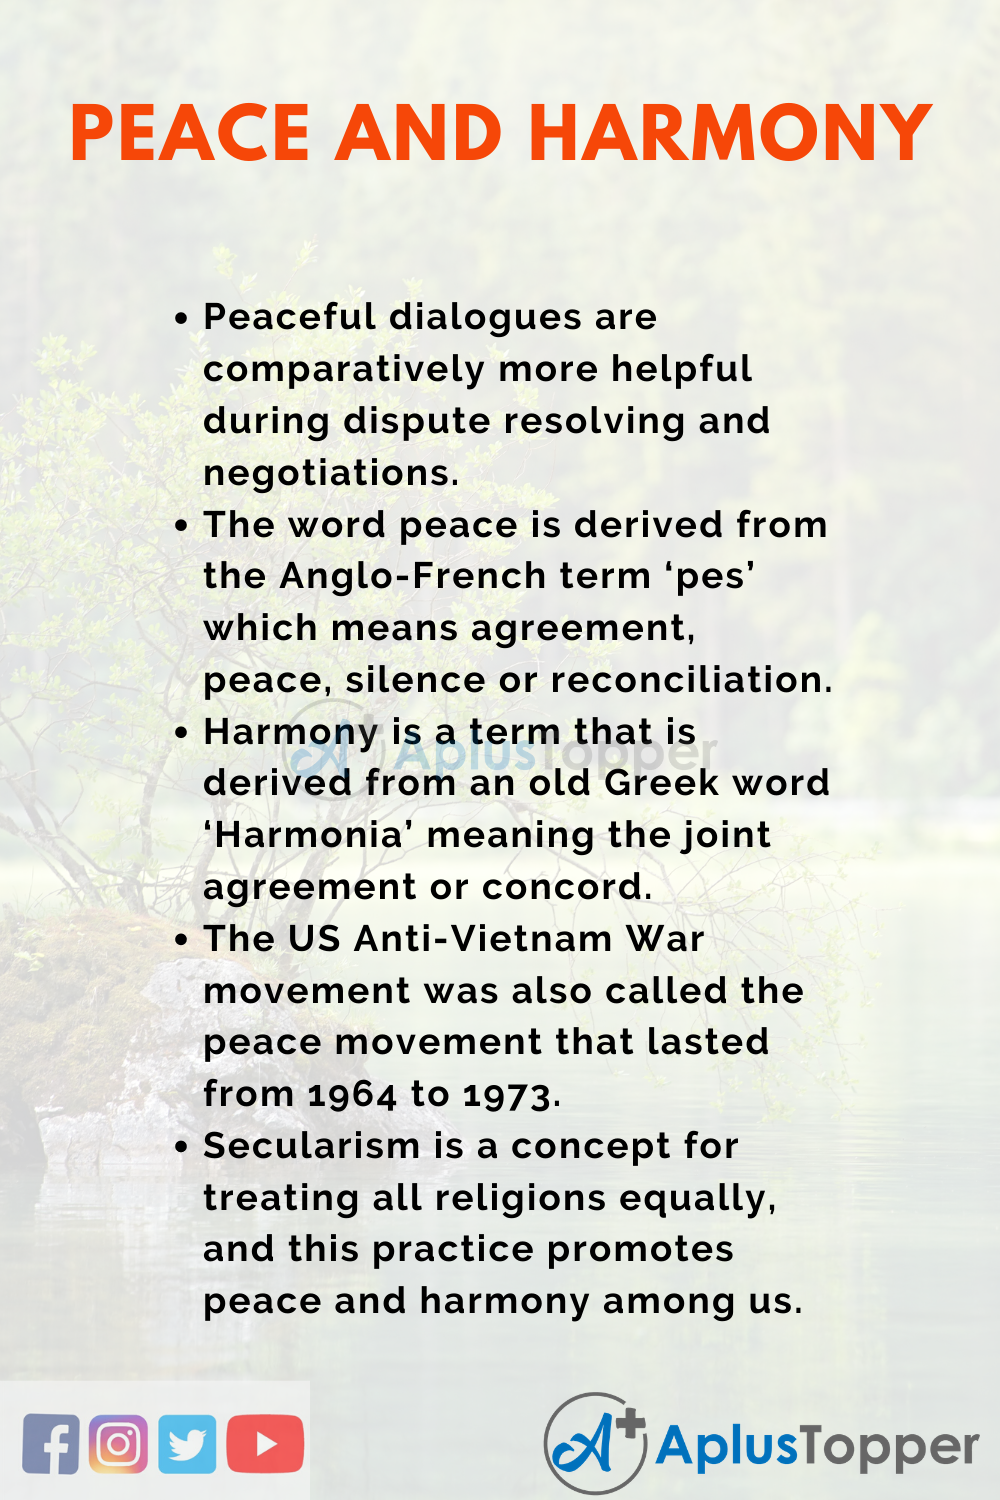 Essay about Peace and Harmony